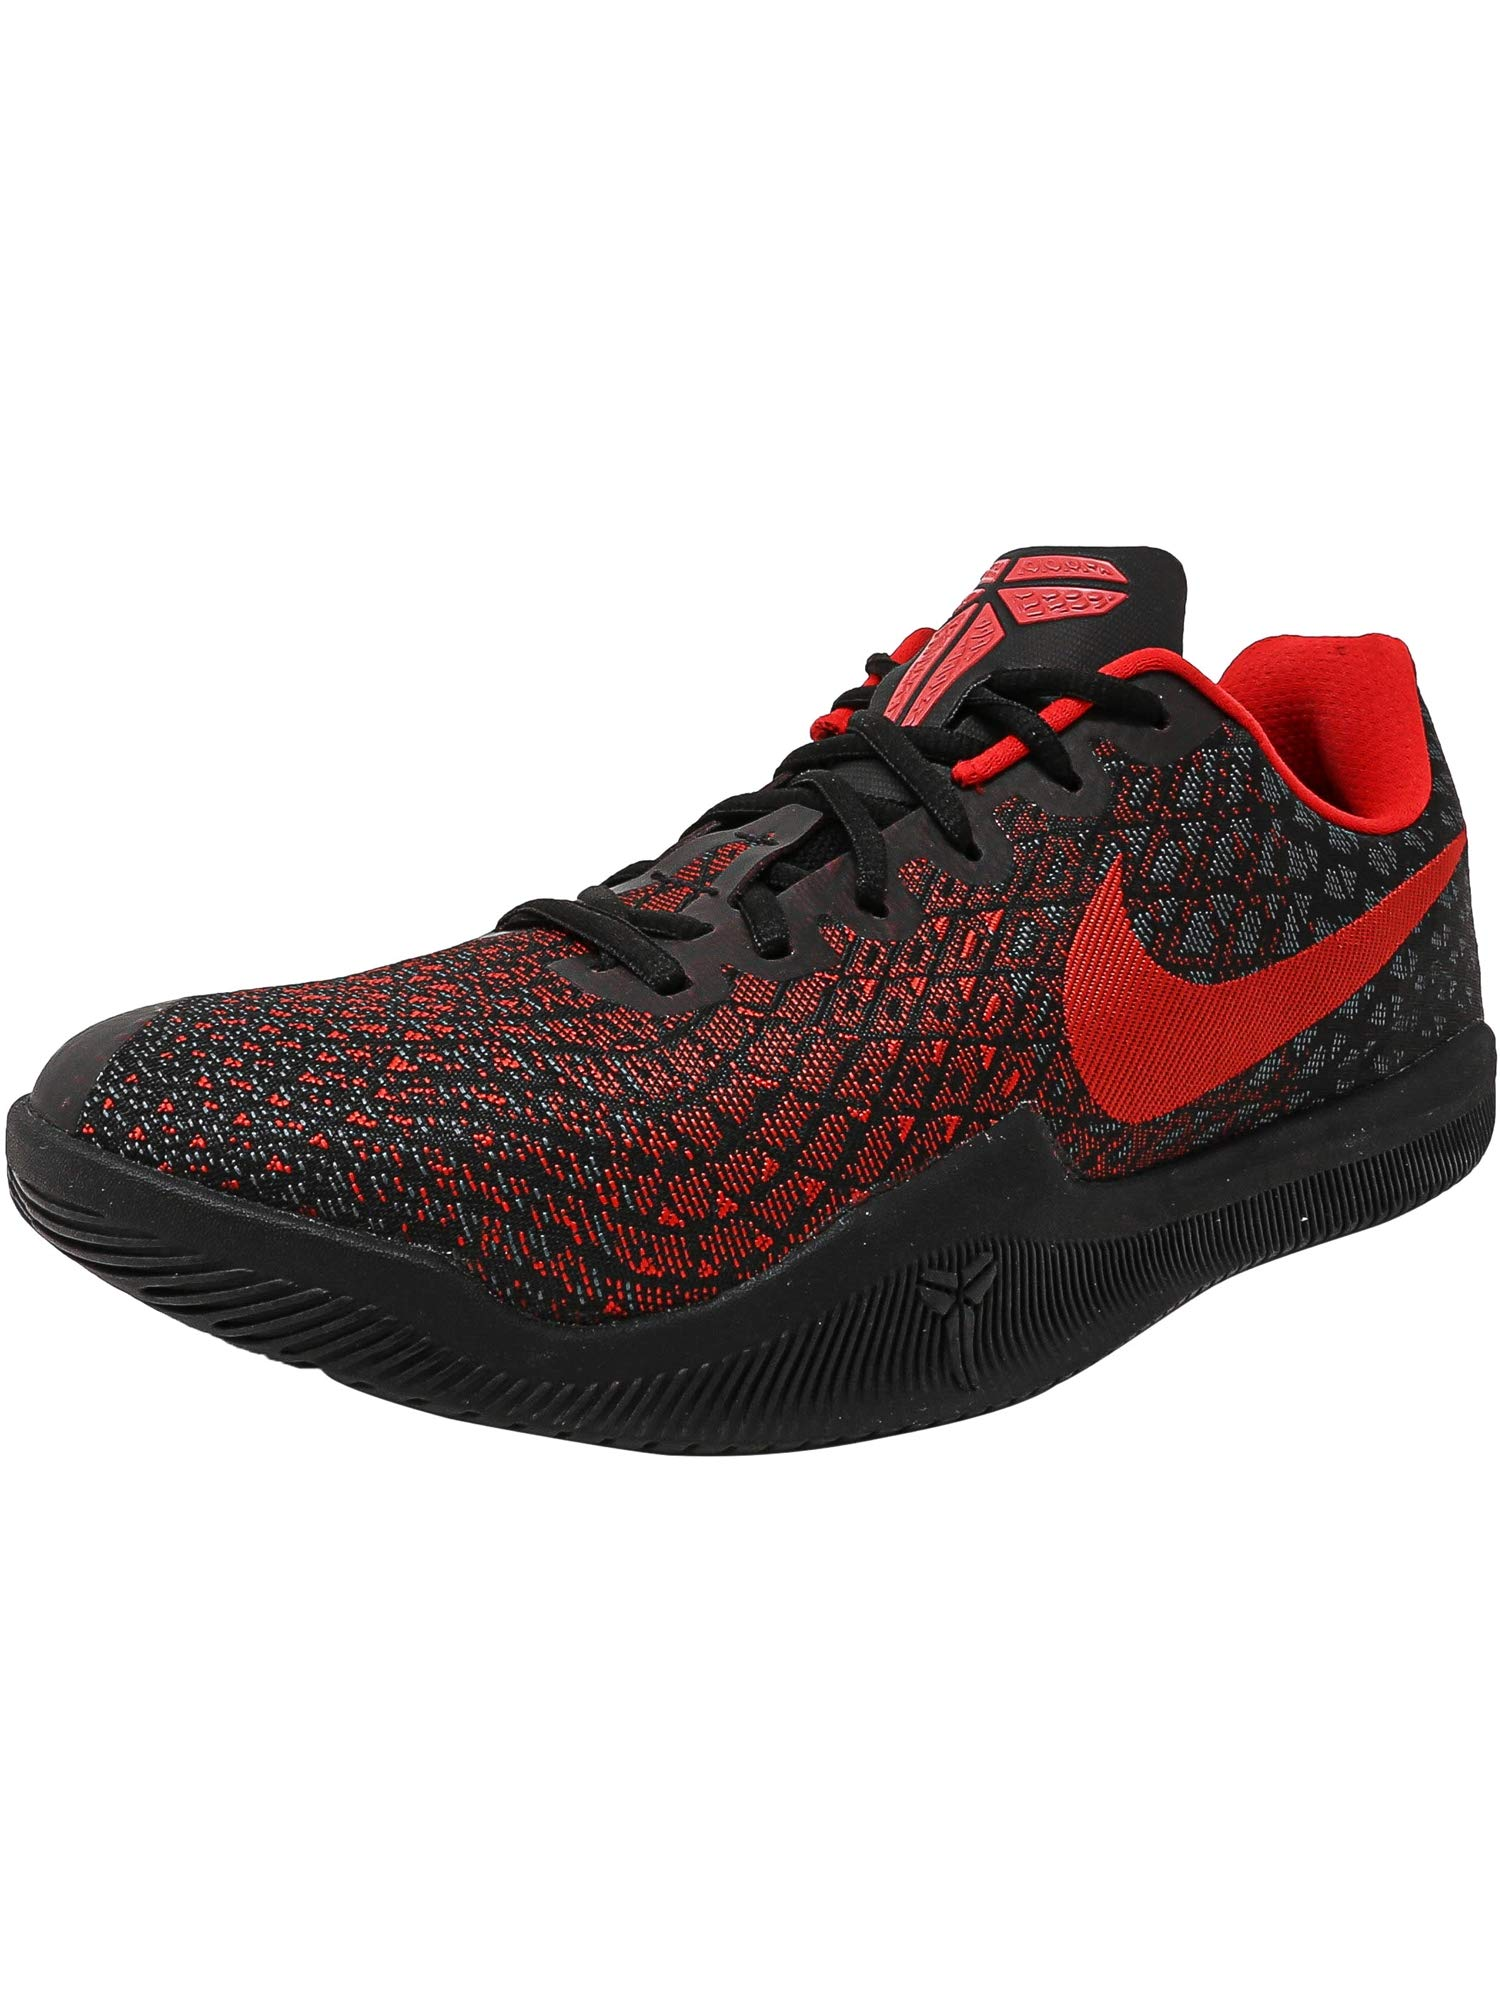 2e2110badd31 Galleon - Nike Men s Kobe Mamba Instinct Basketball Shoes (12